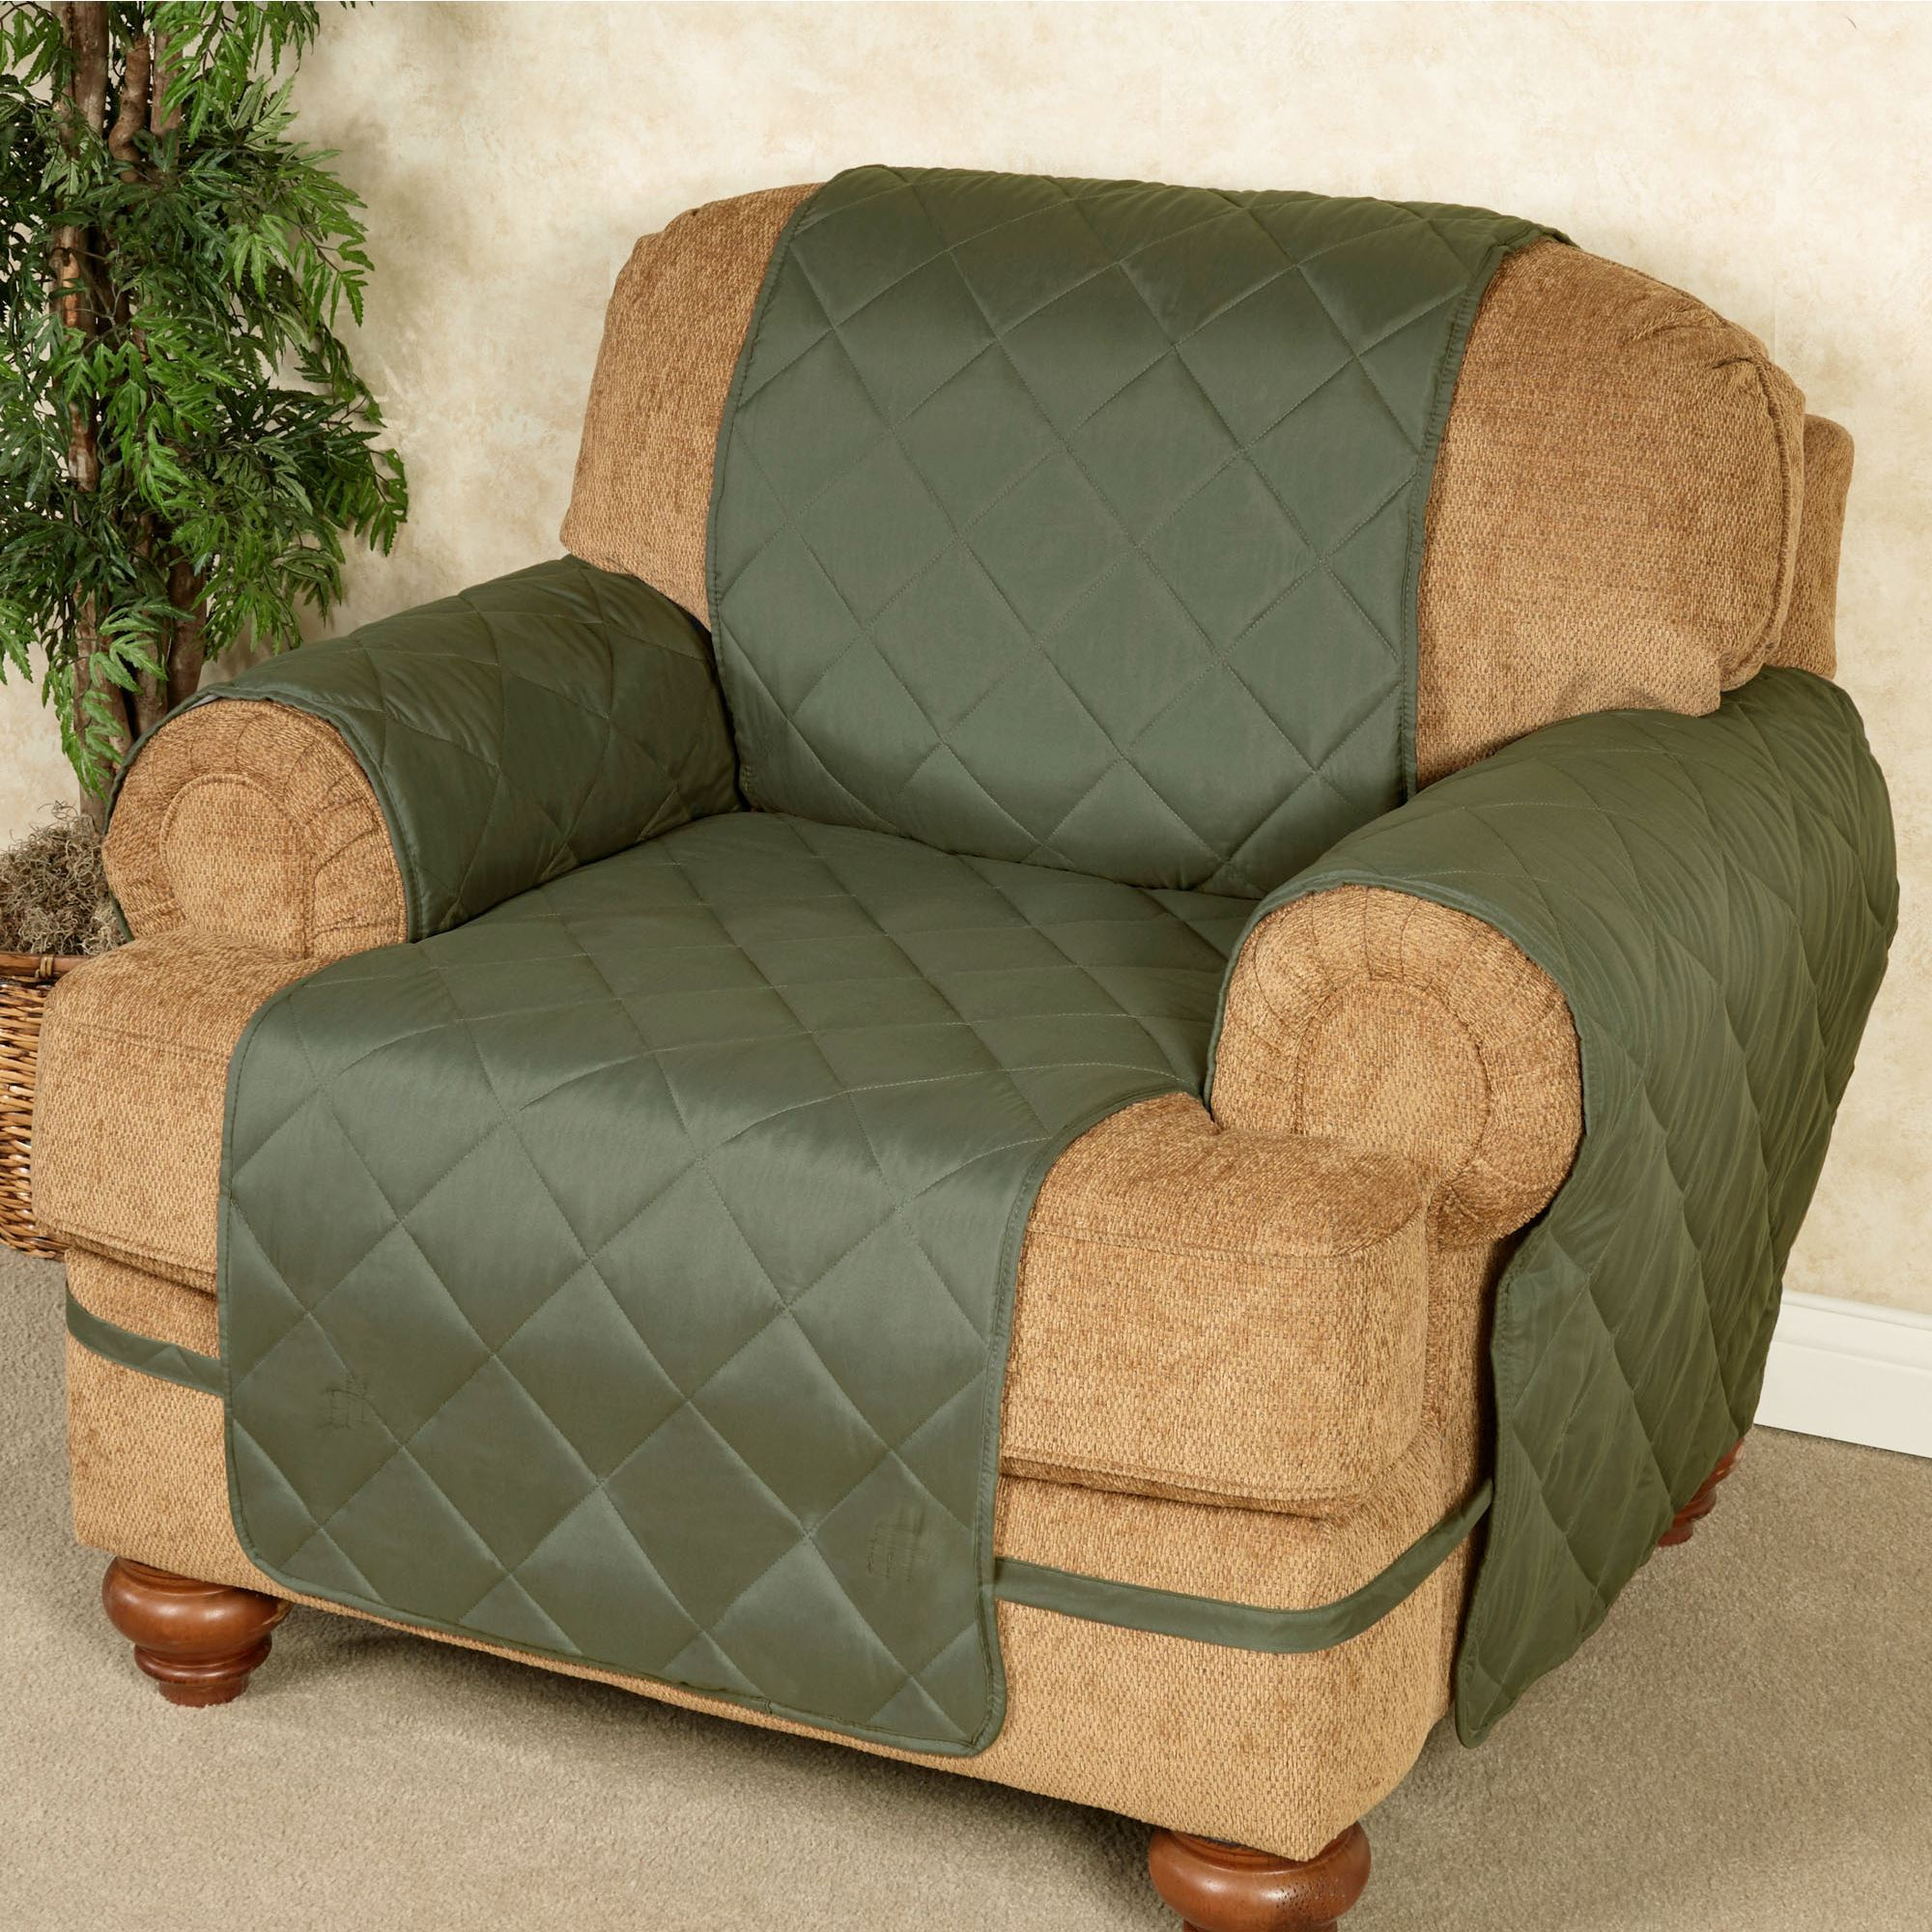 Ultimate Microfiber Furniture Protector Cover Chair